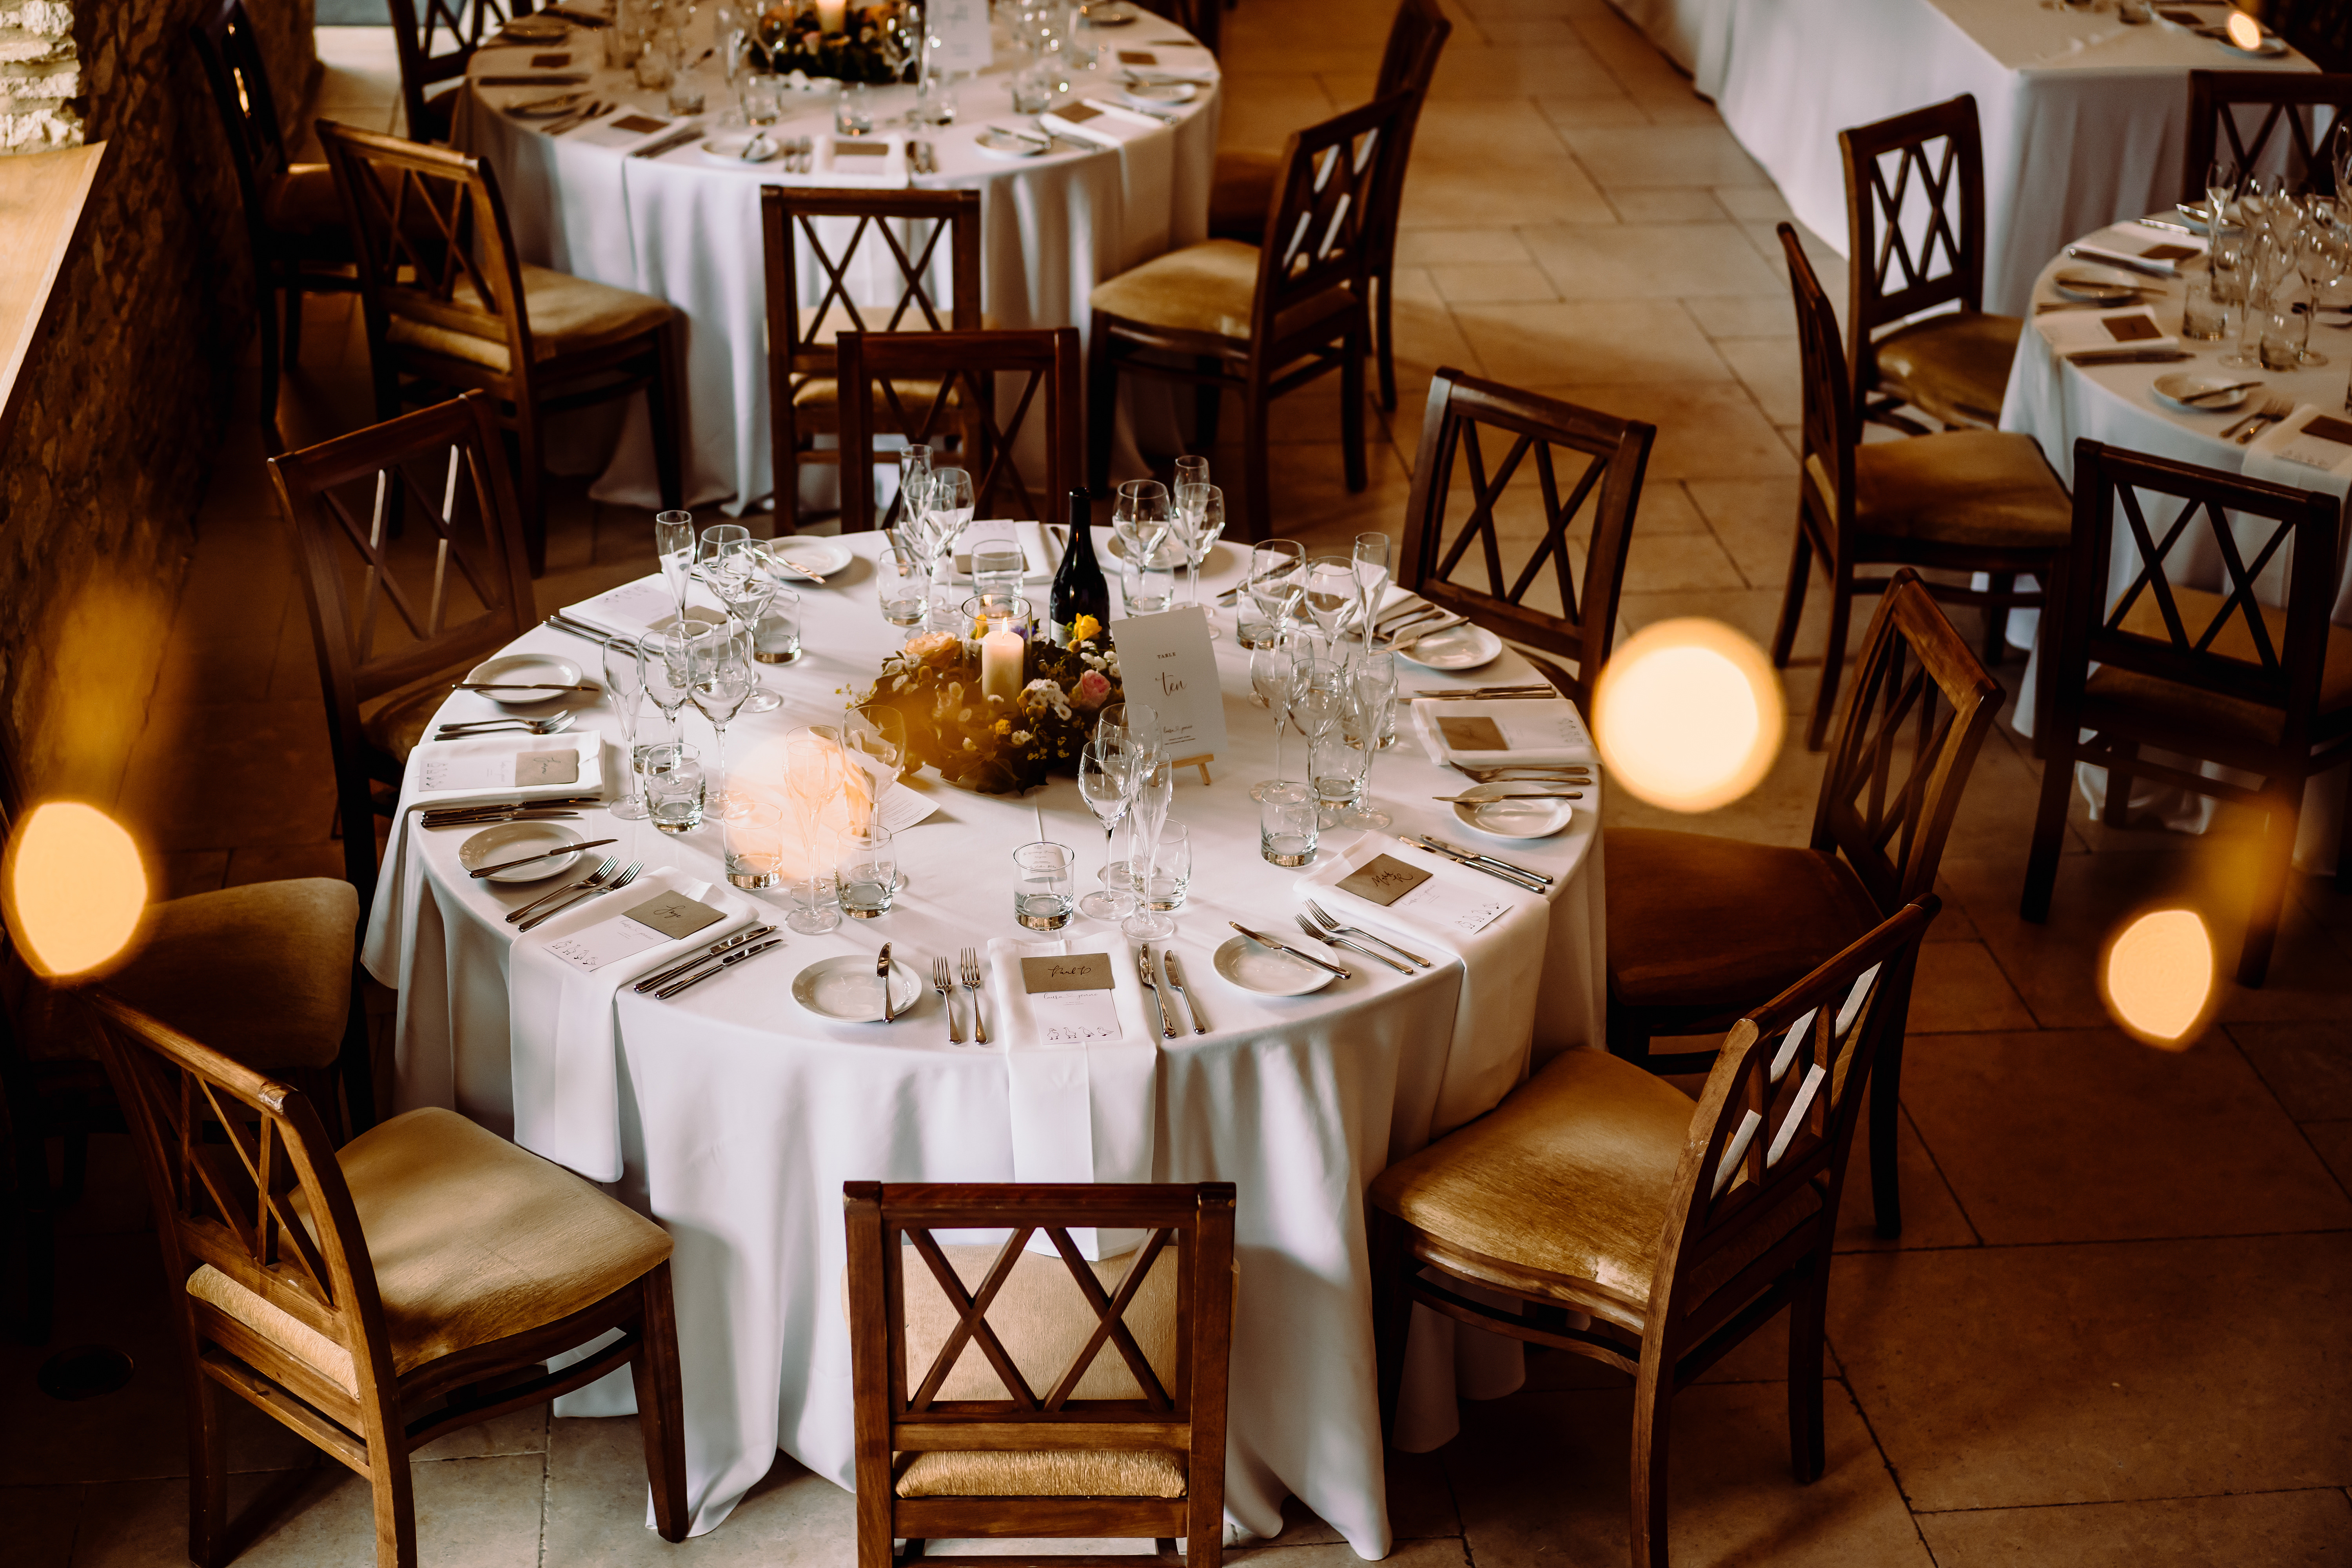 a table set for dinner